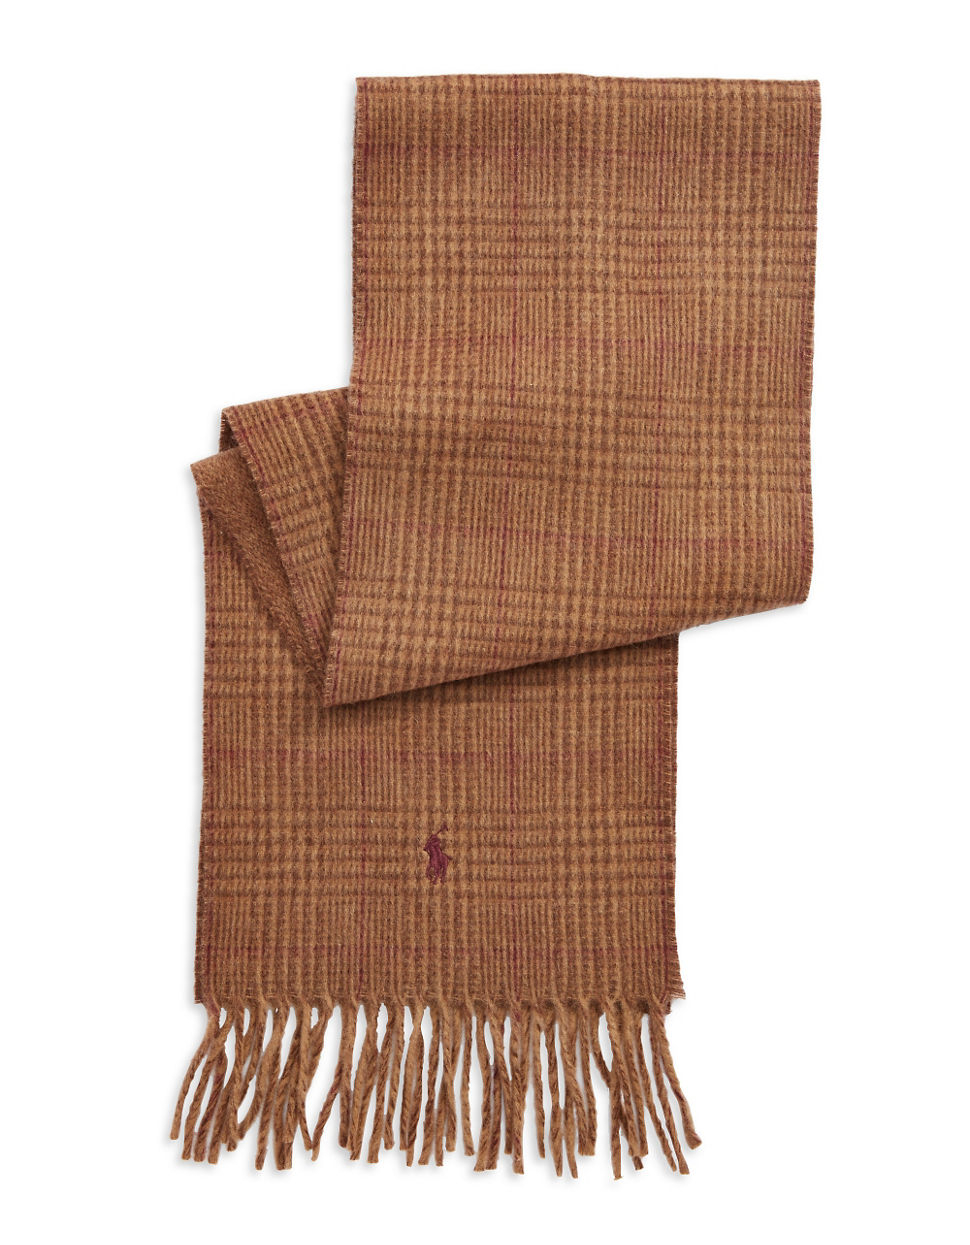 Polo Ralph Lauren Big Pony Jacquard Scarf This distinctive reversible scarf in a soft wool blend features an oversize signature pony logo at one end Finished with self-fringe edges and fringed ends 80 wool20 nylon reversible oversize signature pony logo a.